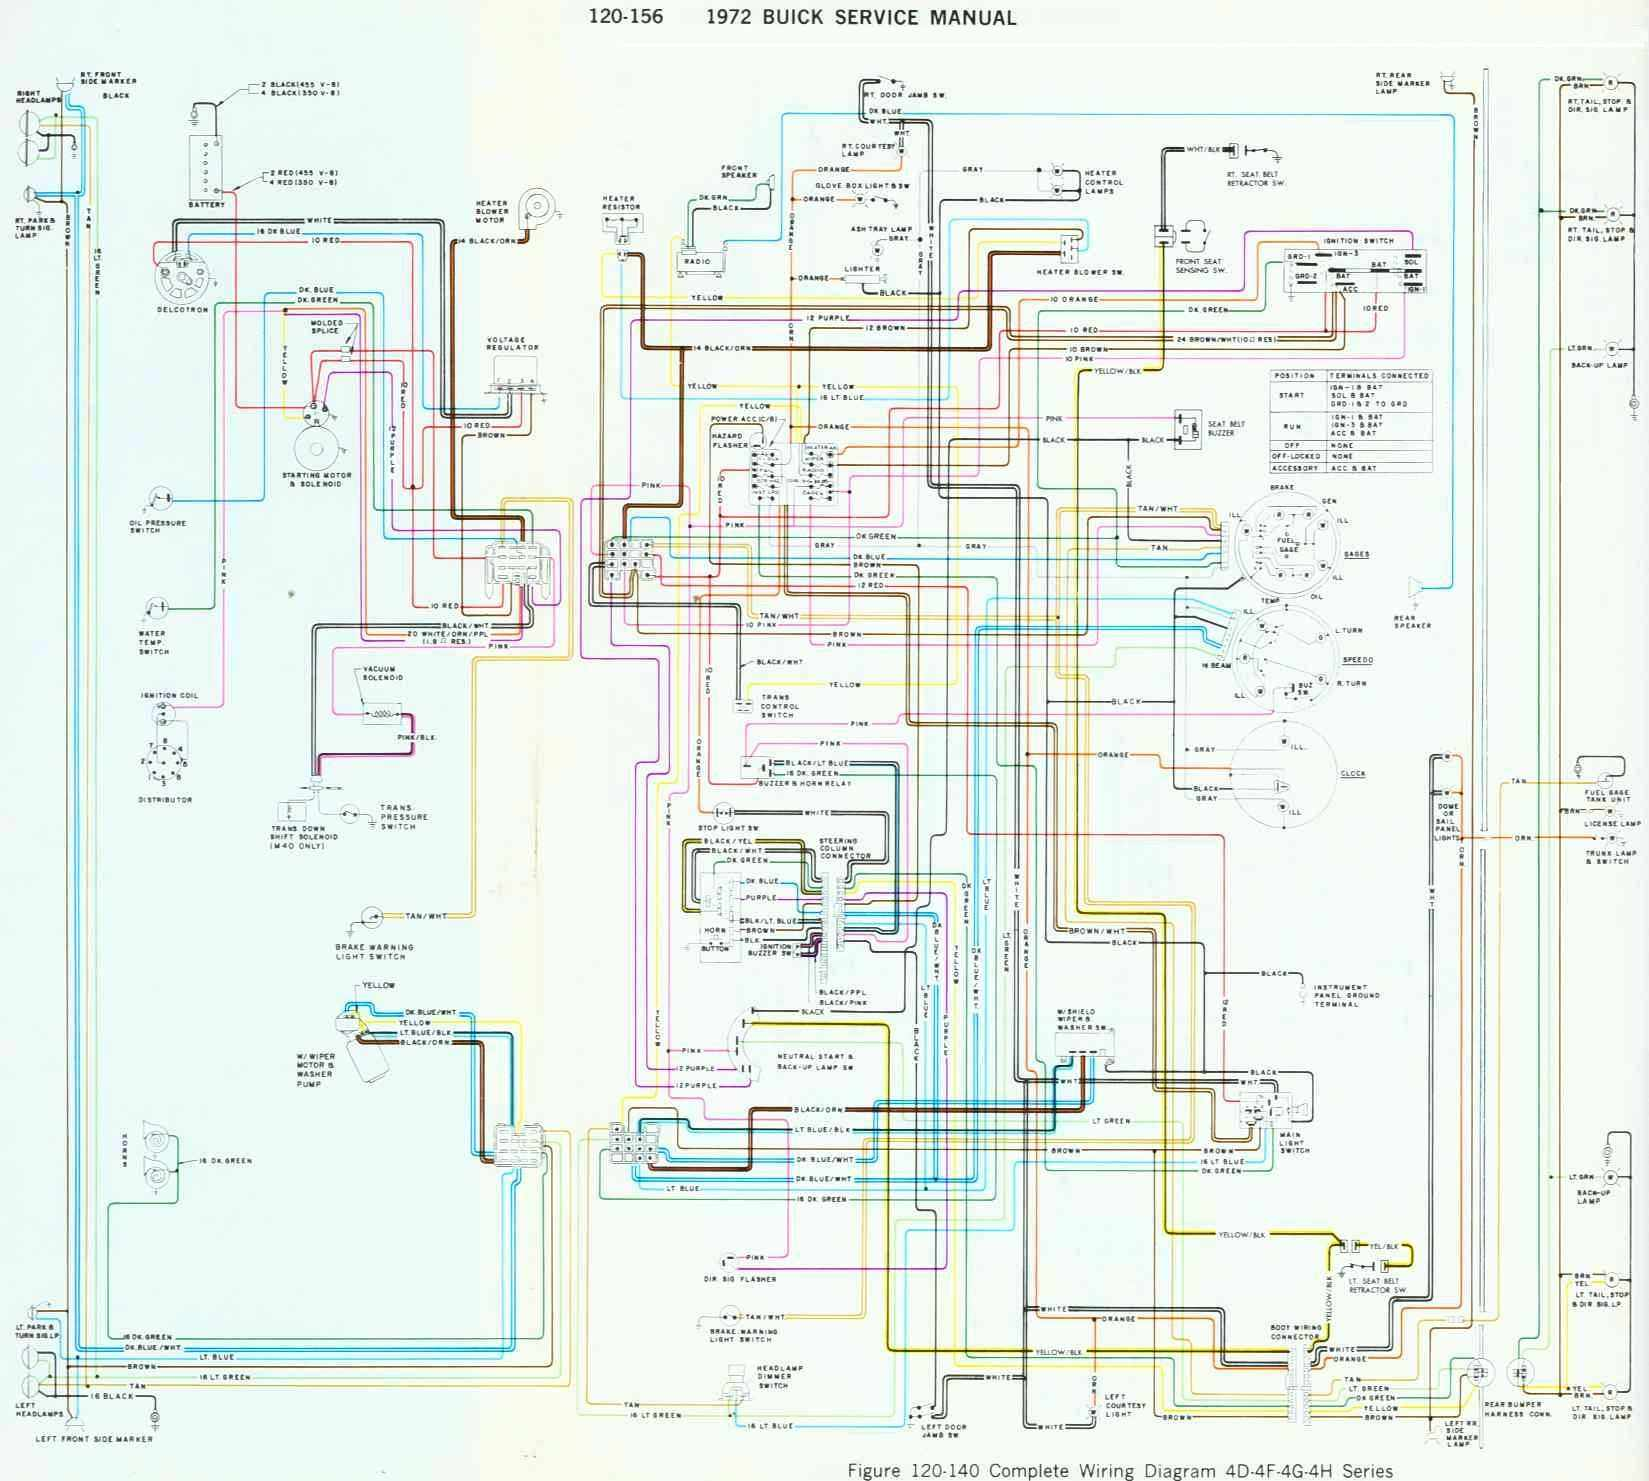 96 buick ac wiring diagram wiring library96 buick ac wiring diagram  schematic wiring diagrams \\